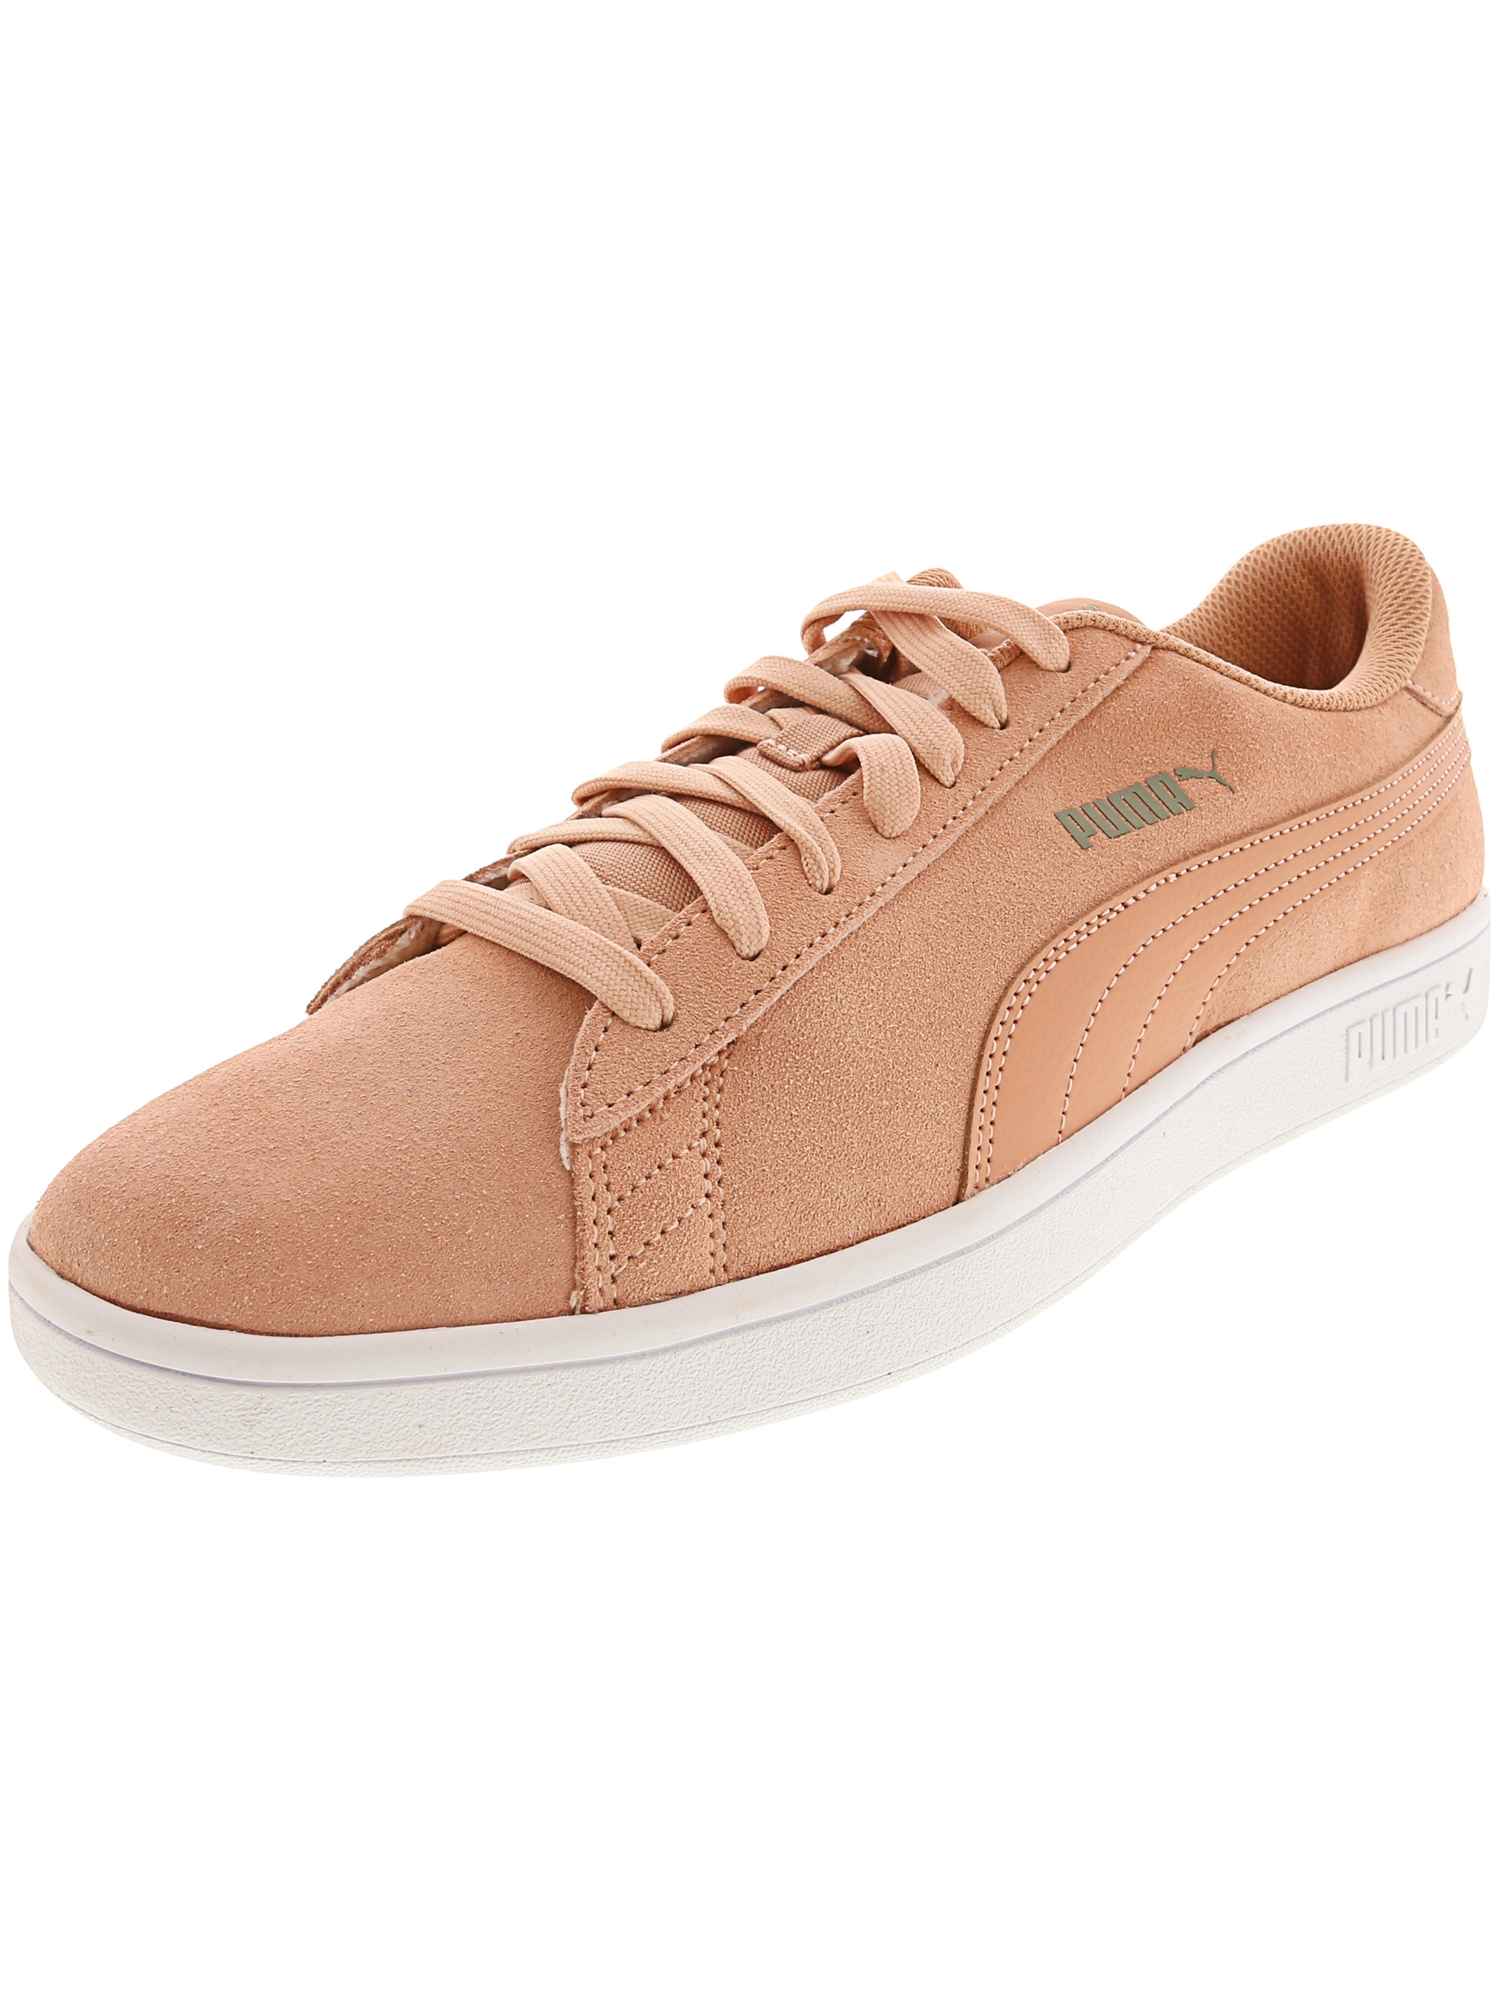 check out 68eb8 8d013 Puma Smash V2 Suede Fashion Sneaker - 10.5M - Muted Clay / Muted Clay